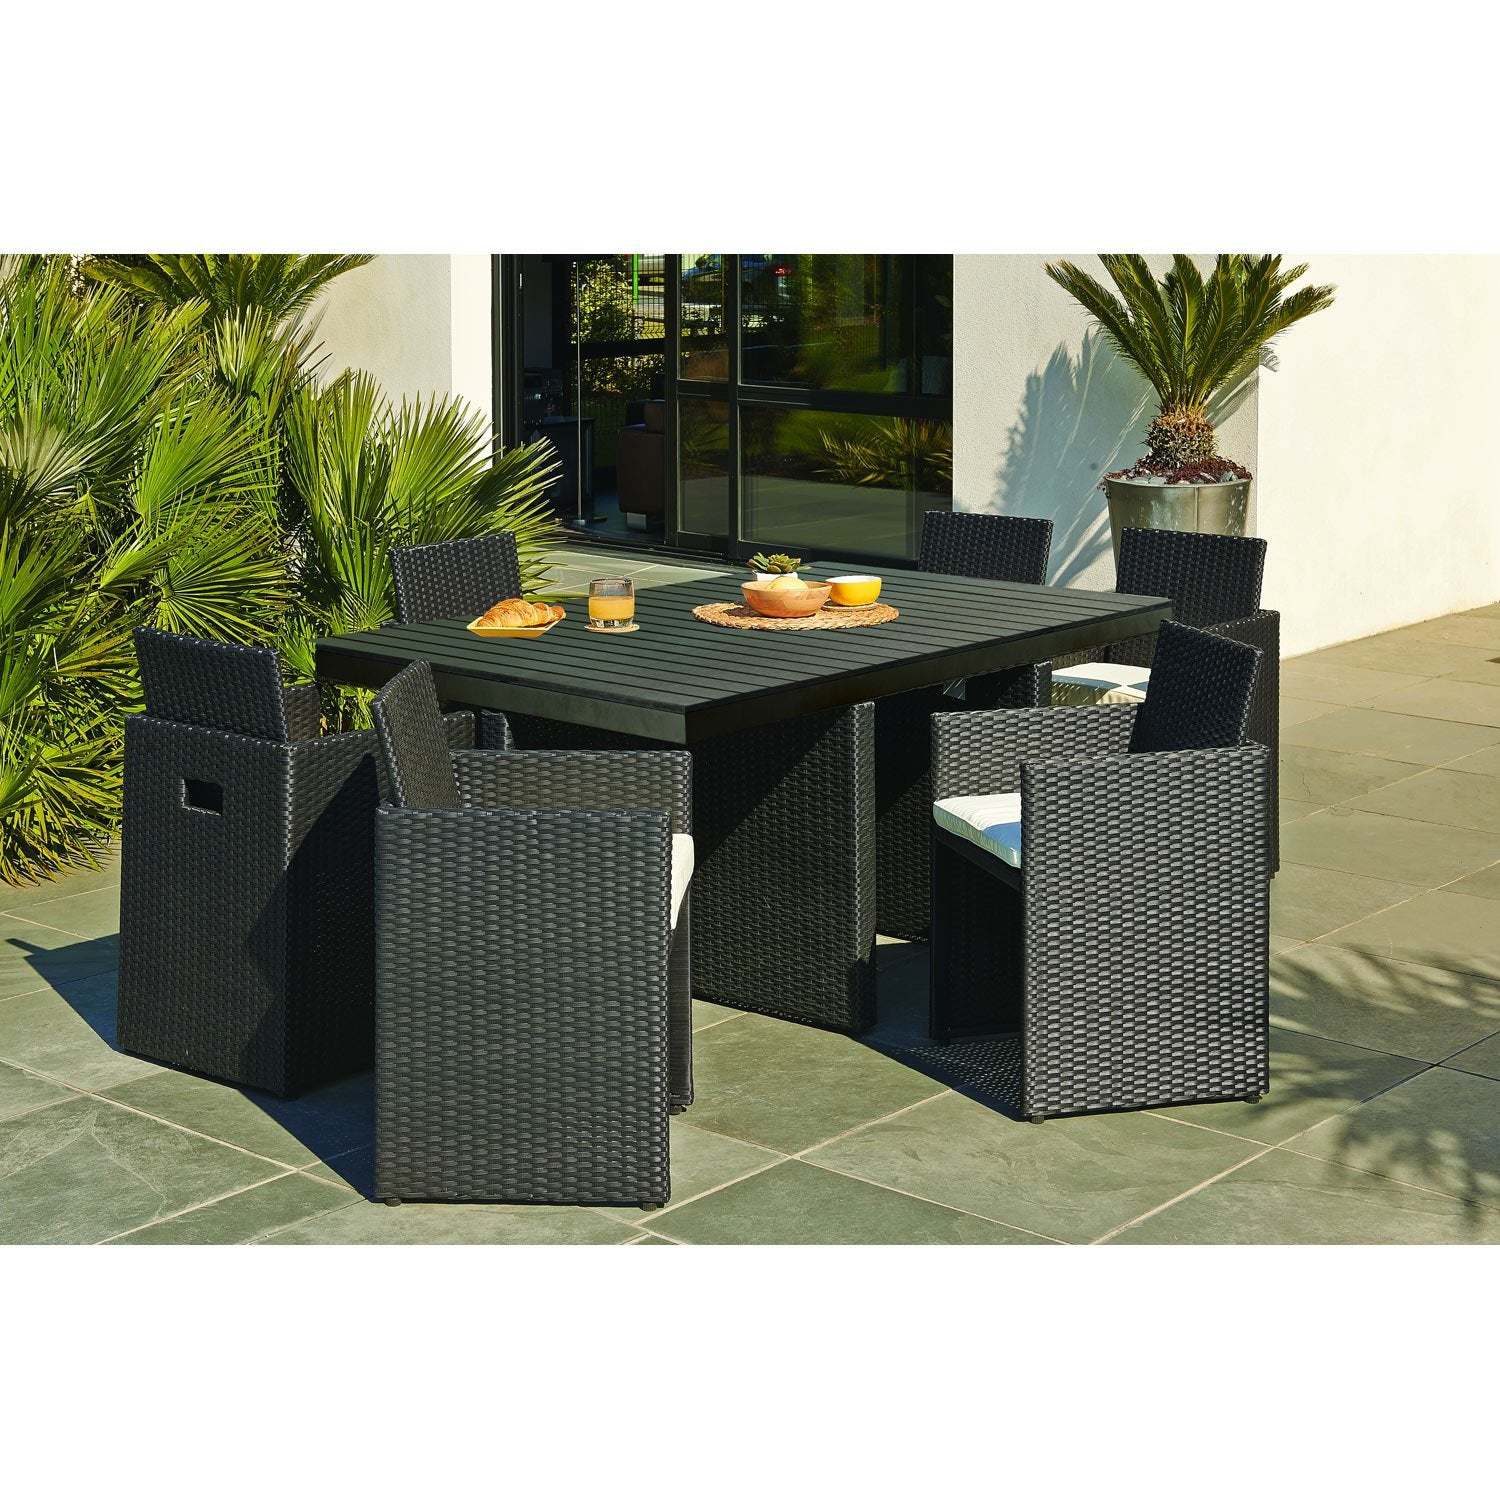 Salon de jardin encastrable r sine tress e noir 1 table for Balancines para jardin leroy merlin